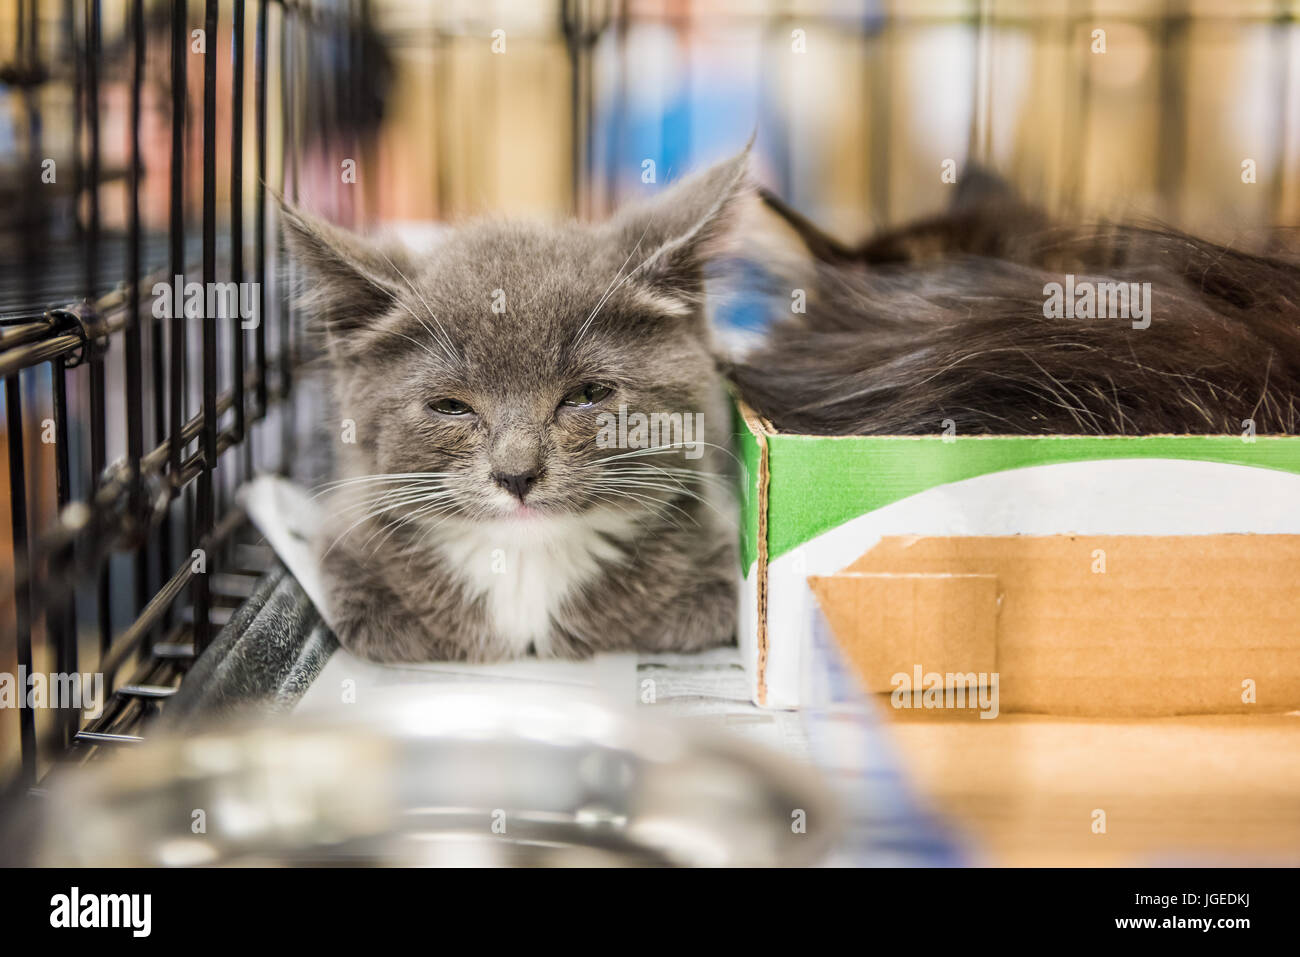 Closeup of adorable tiny russian blue grey and white kitten with green eyes blinking in cage - Stock Image